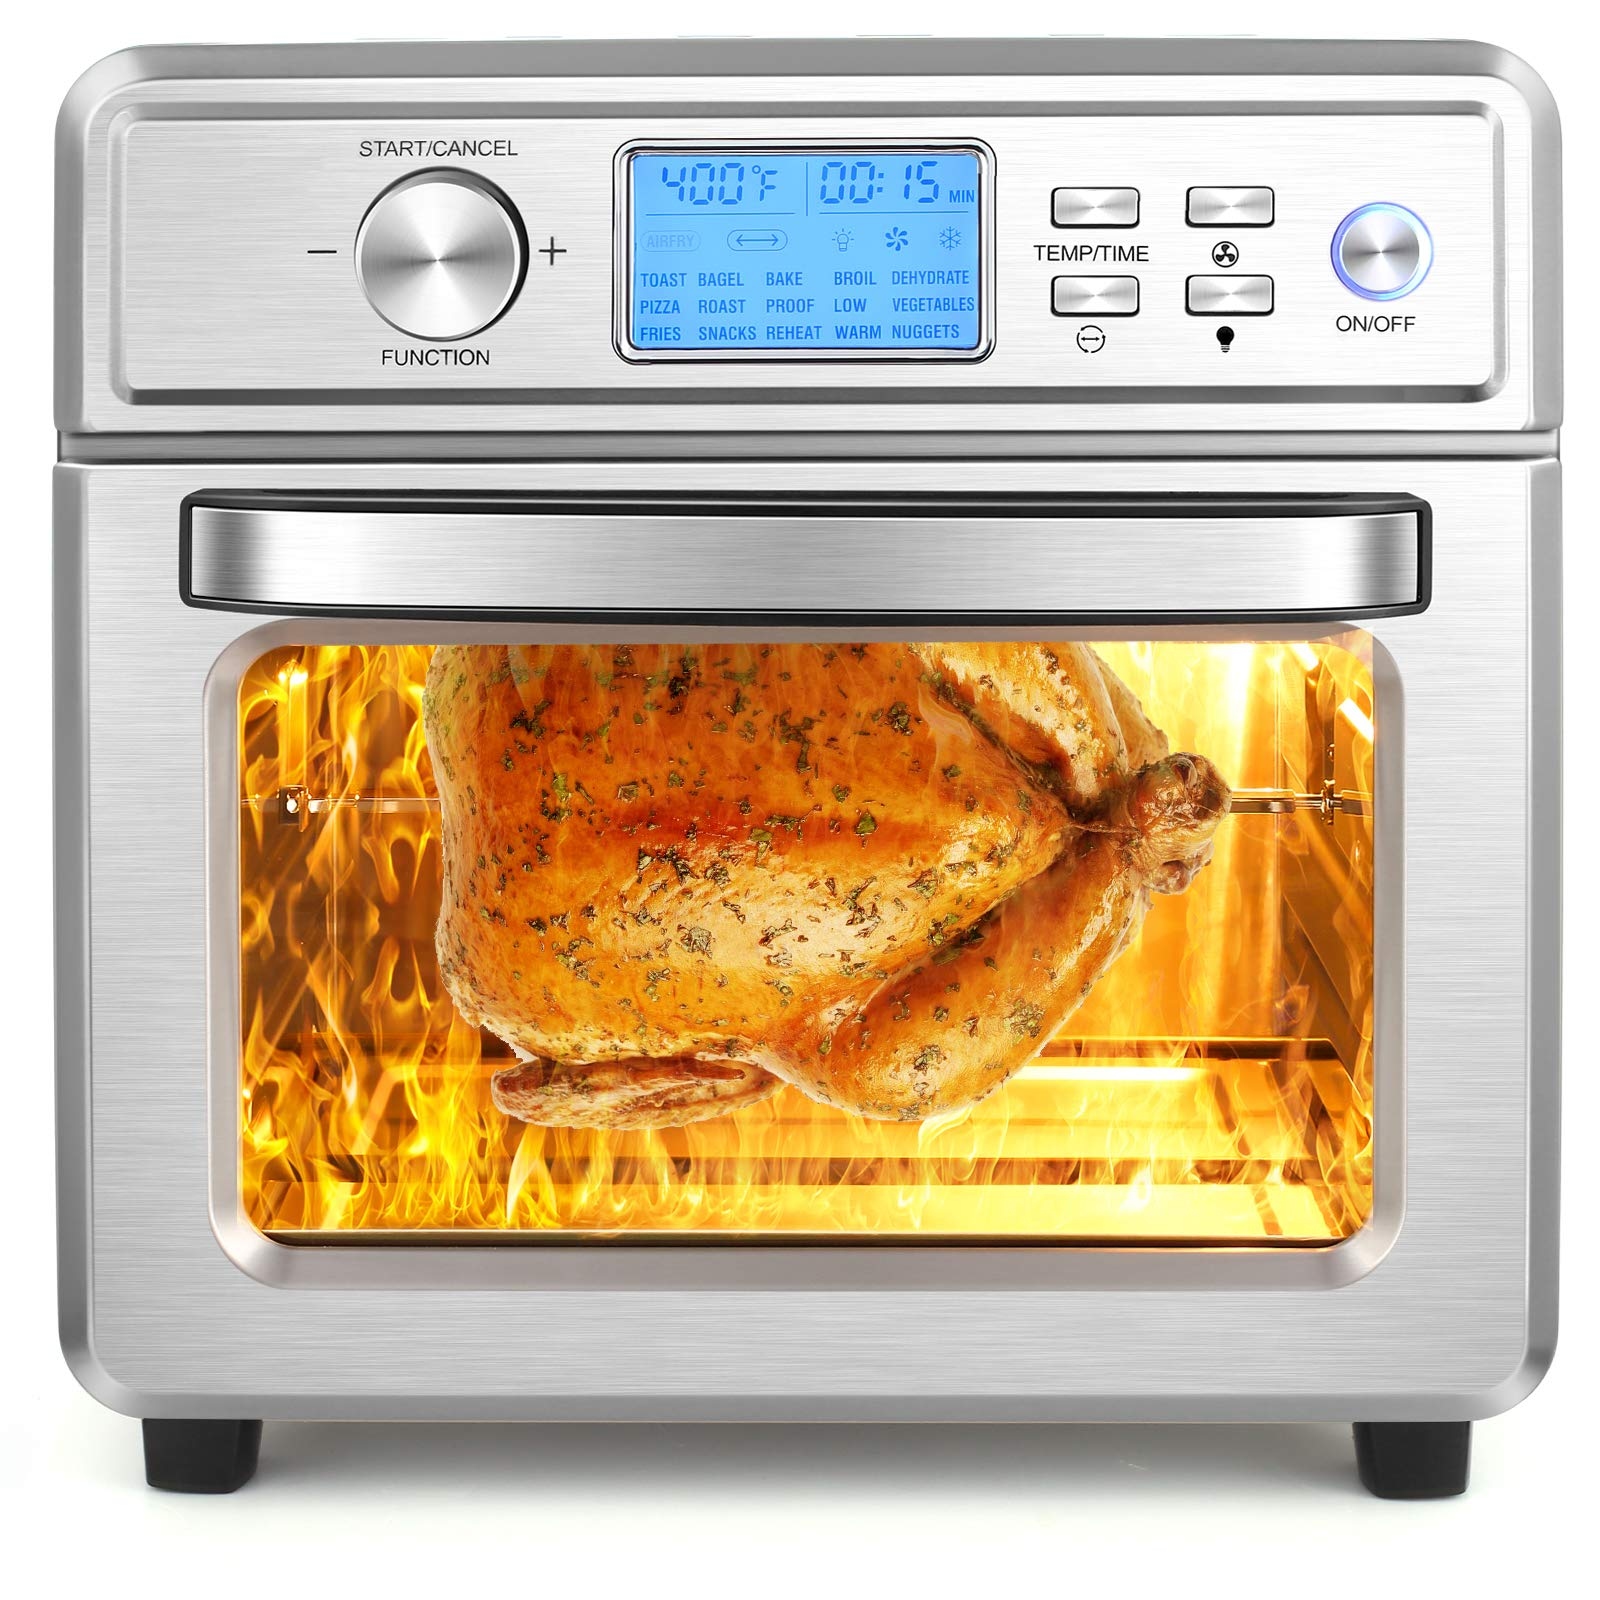 NICTEMAW Air Fryer, 21QT Air Fryer Oven, 1700W Electric Air Fryer Toaster Oven,16-in-1 Presets for Baking, with LED Display & Temperature/Time Dial,Roaster, Broiler, Rotisserie, Dehydrator,Pizza Oven.